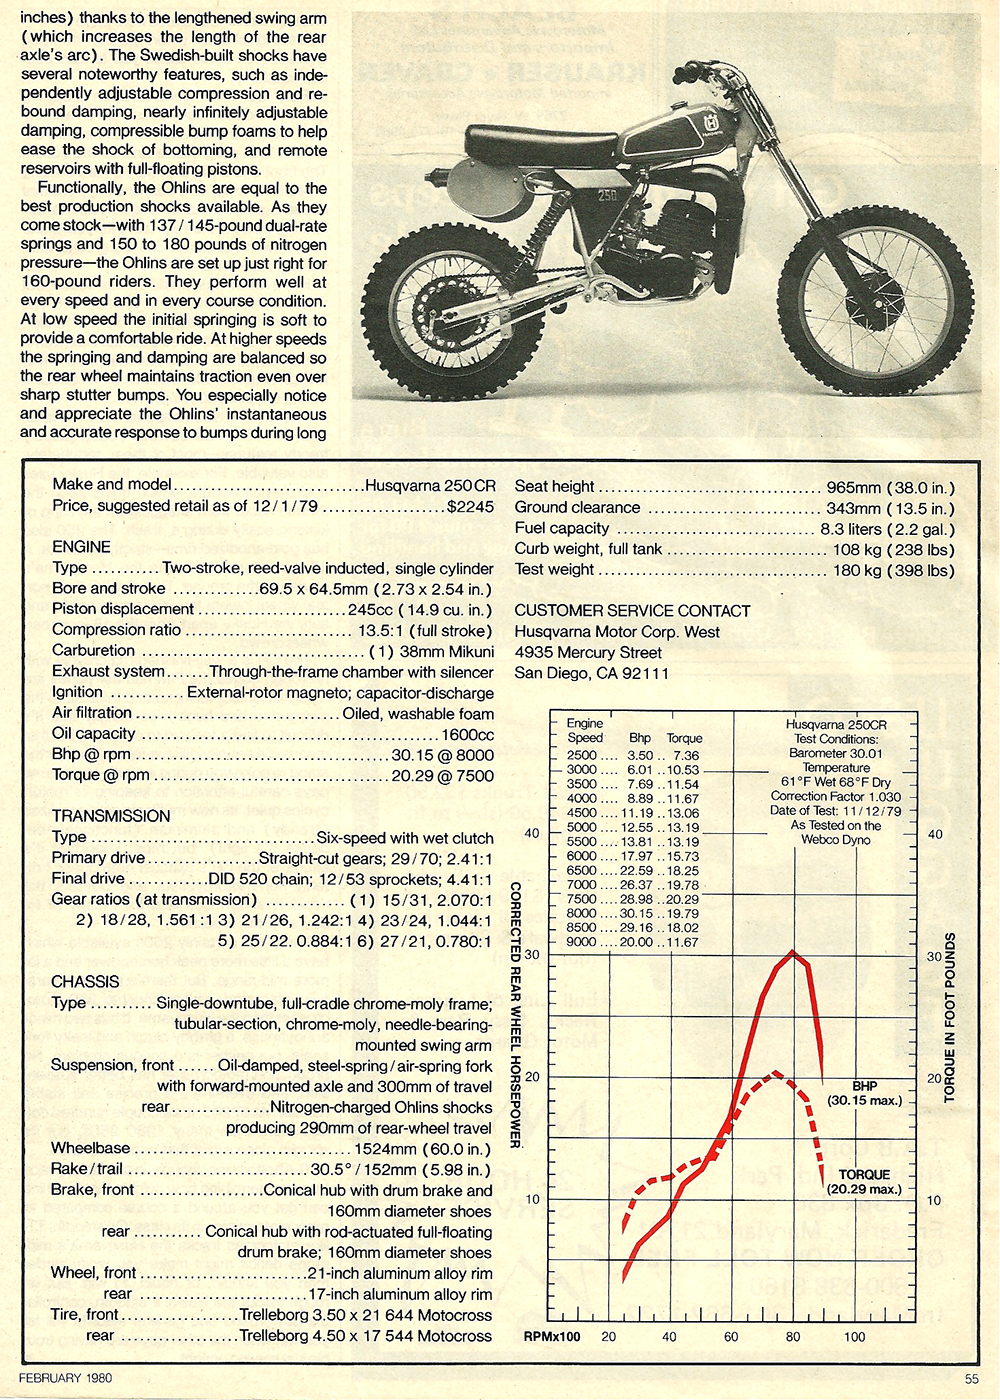 1980 Husqvarna 250 CR road test 6.jpg